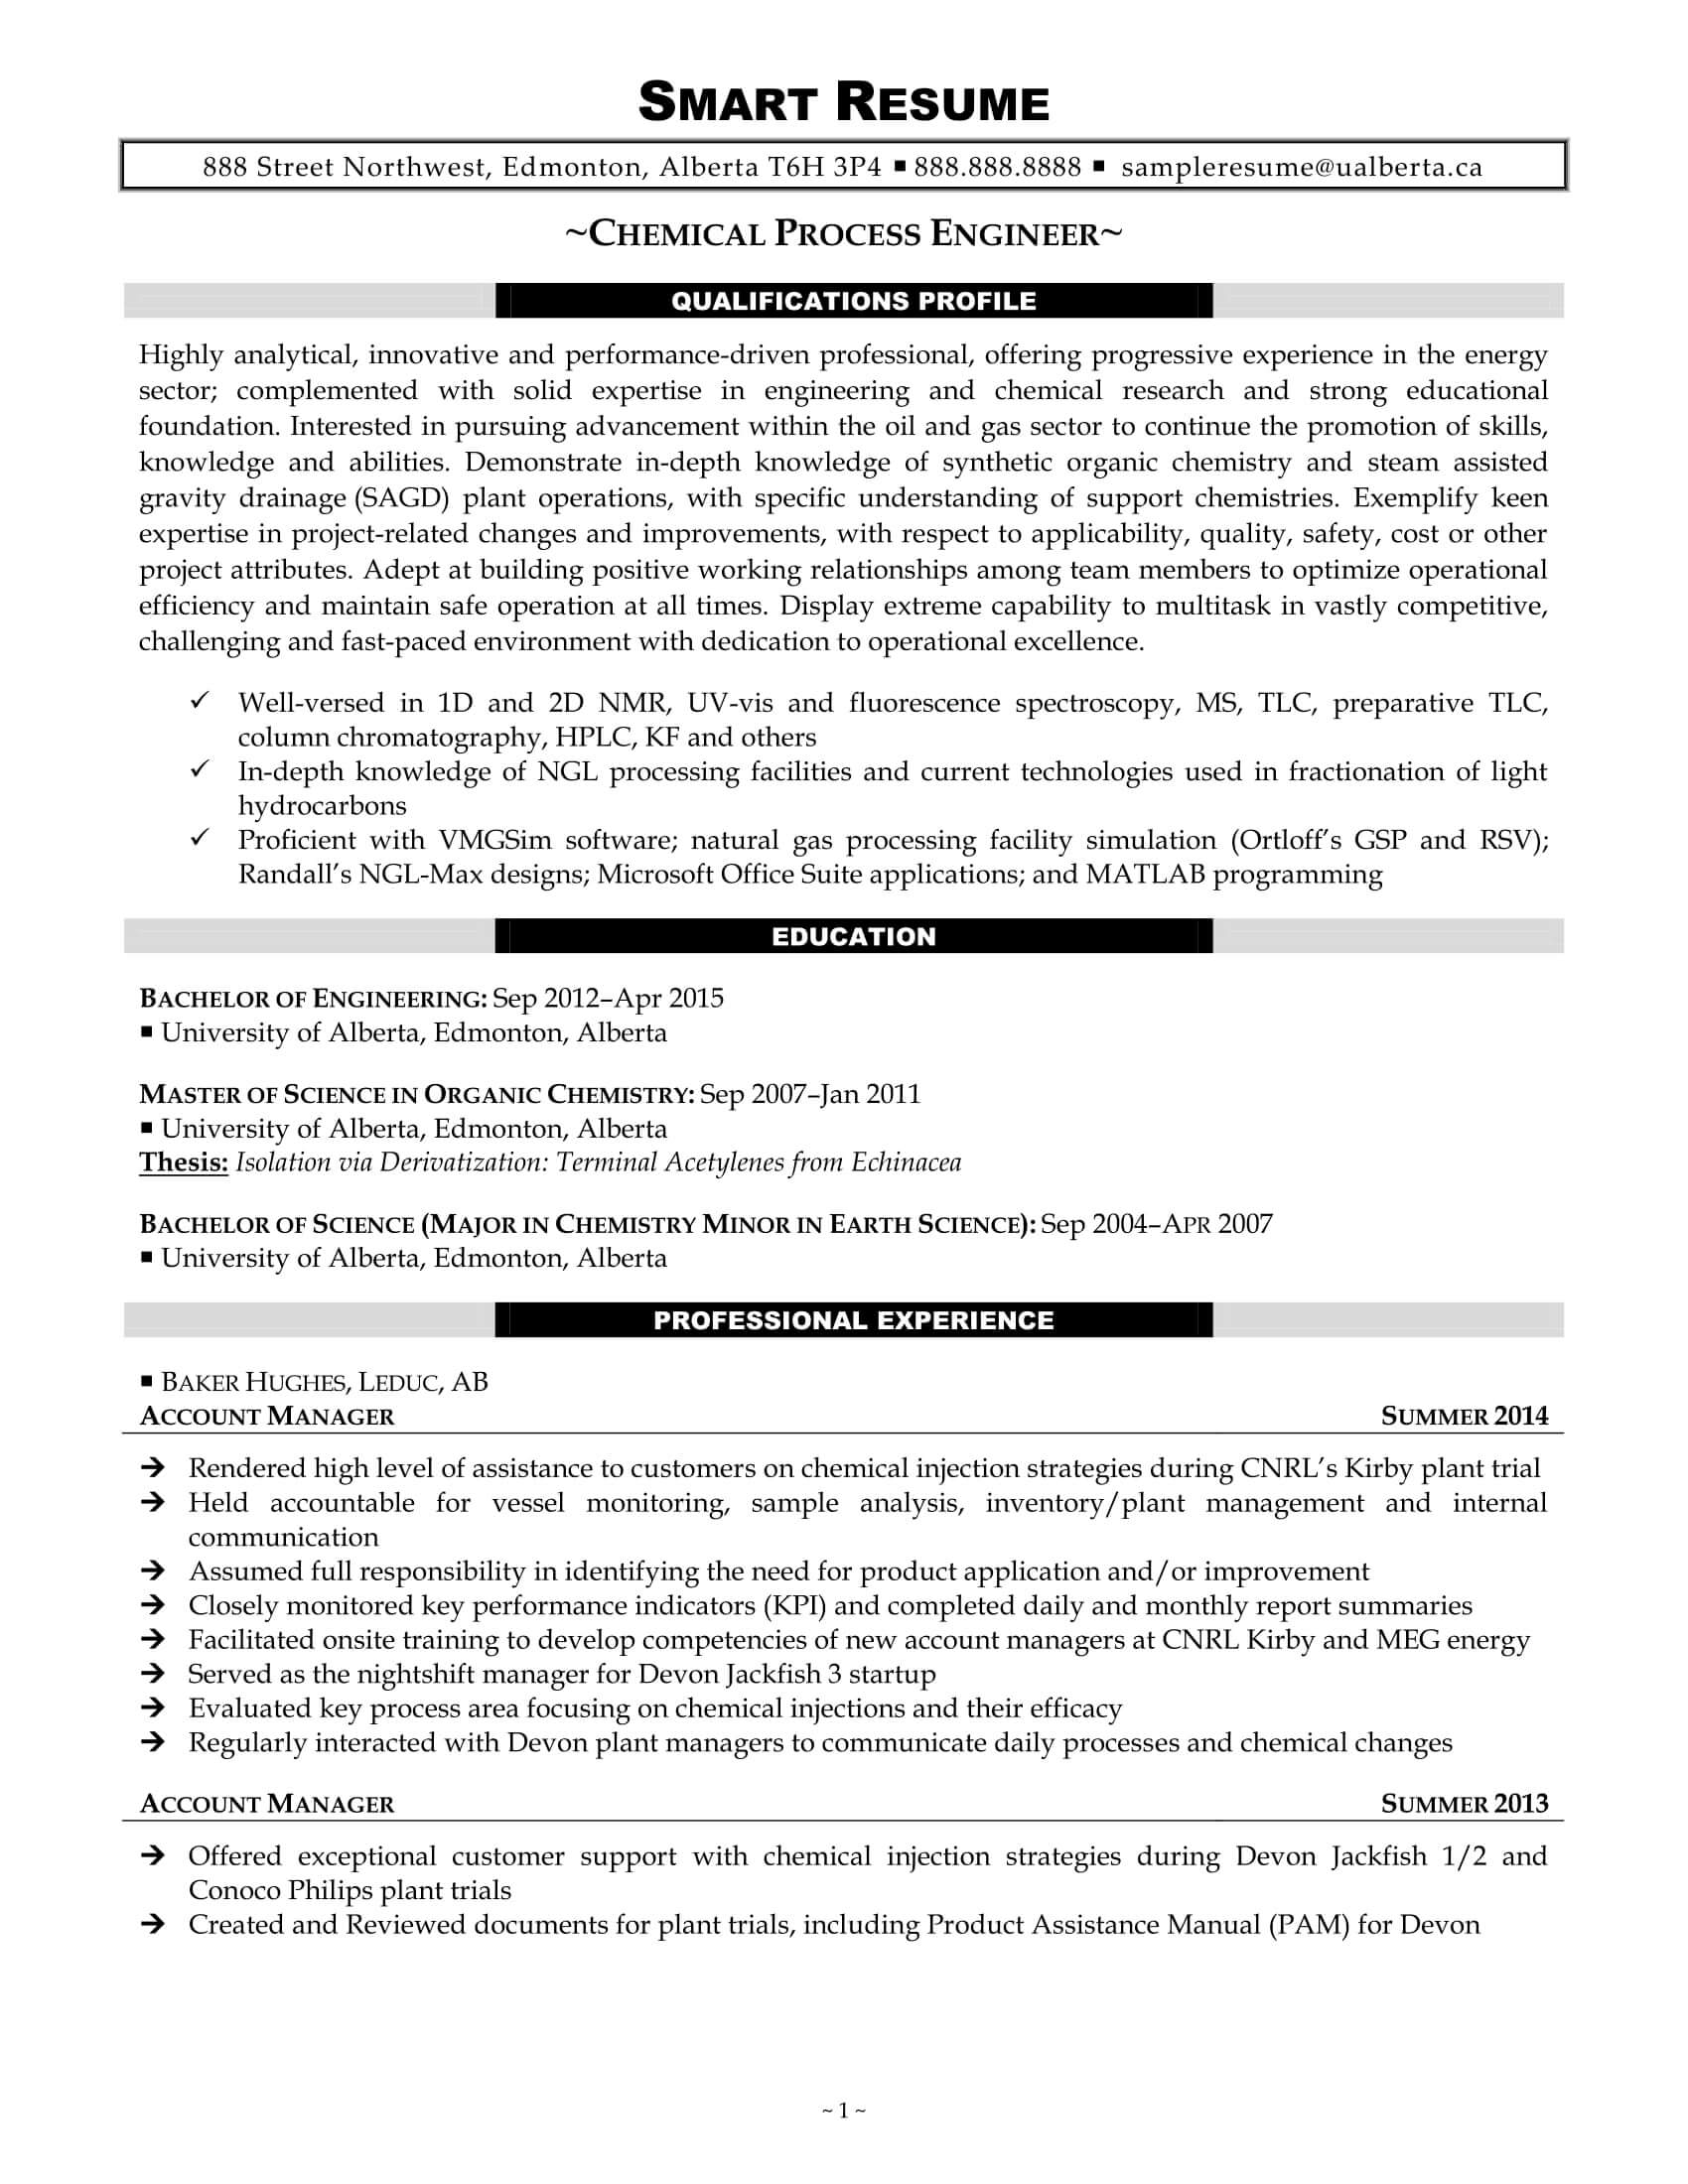 Download Process Engineer Resume Sample Resume Examples VisualCV